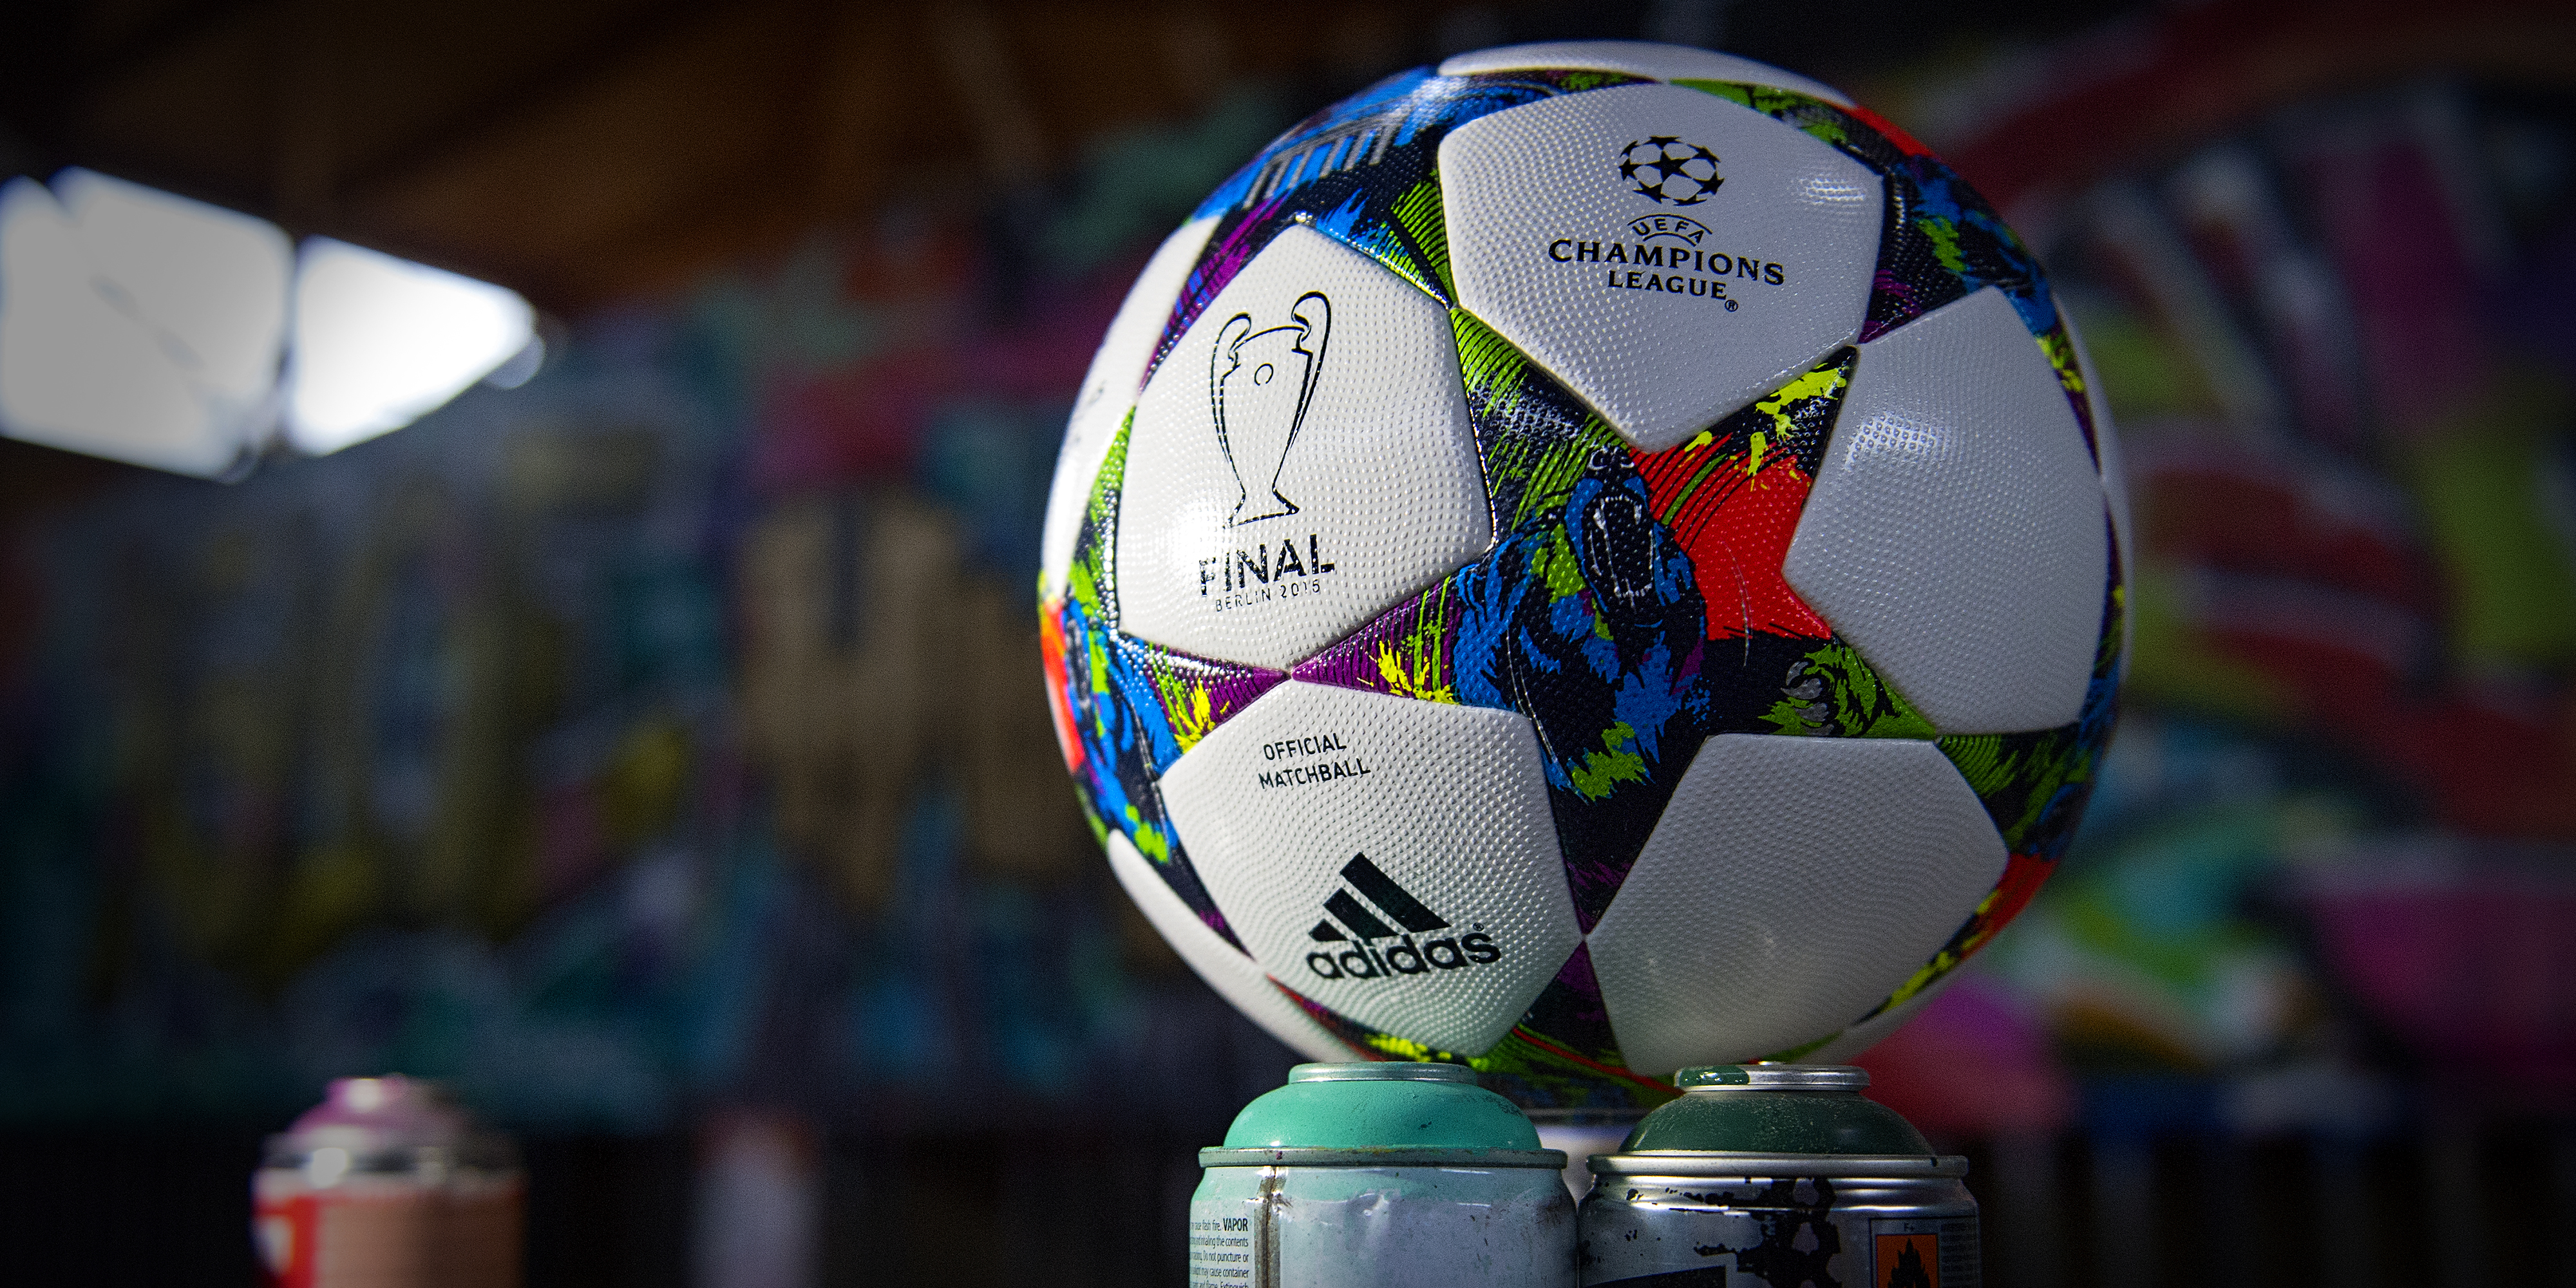 Schedule of Champions League quarter-finals on TV - World Soccer Talk b5e3a9bf725a7